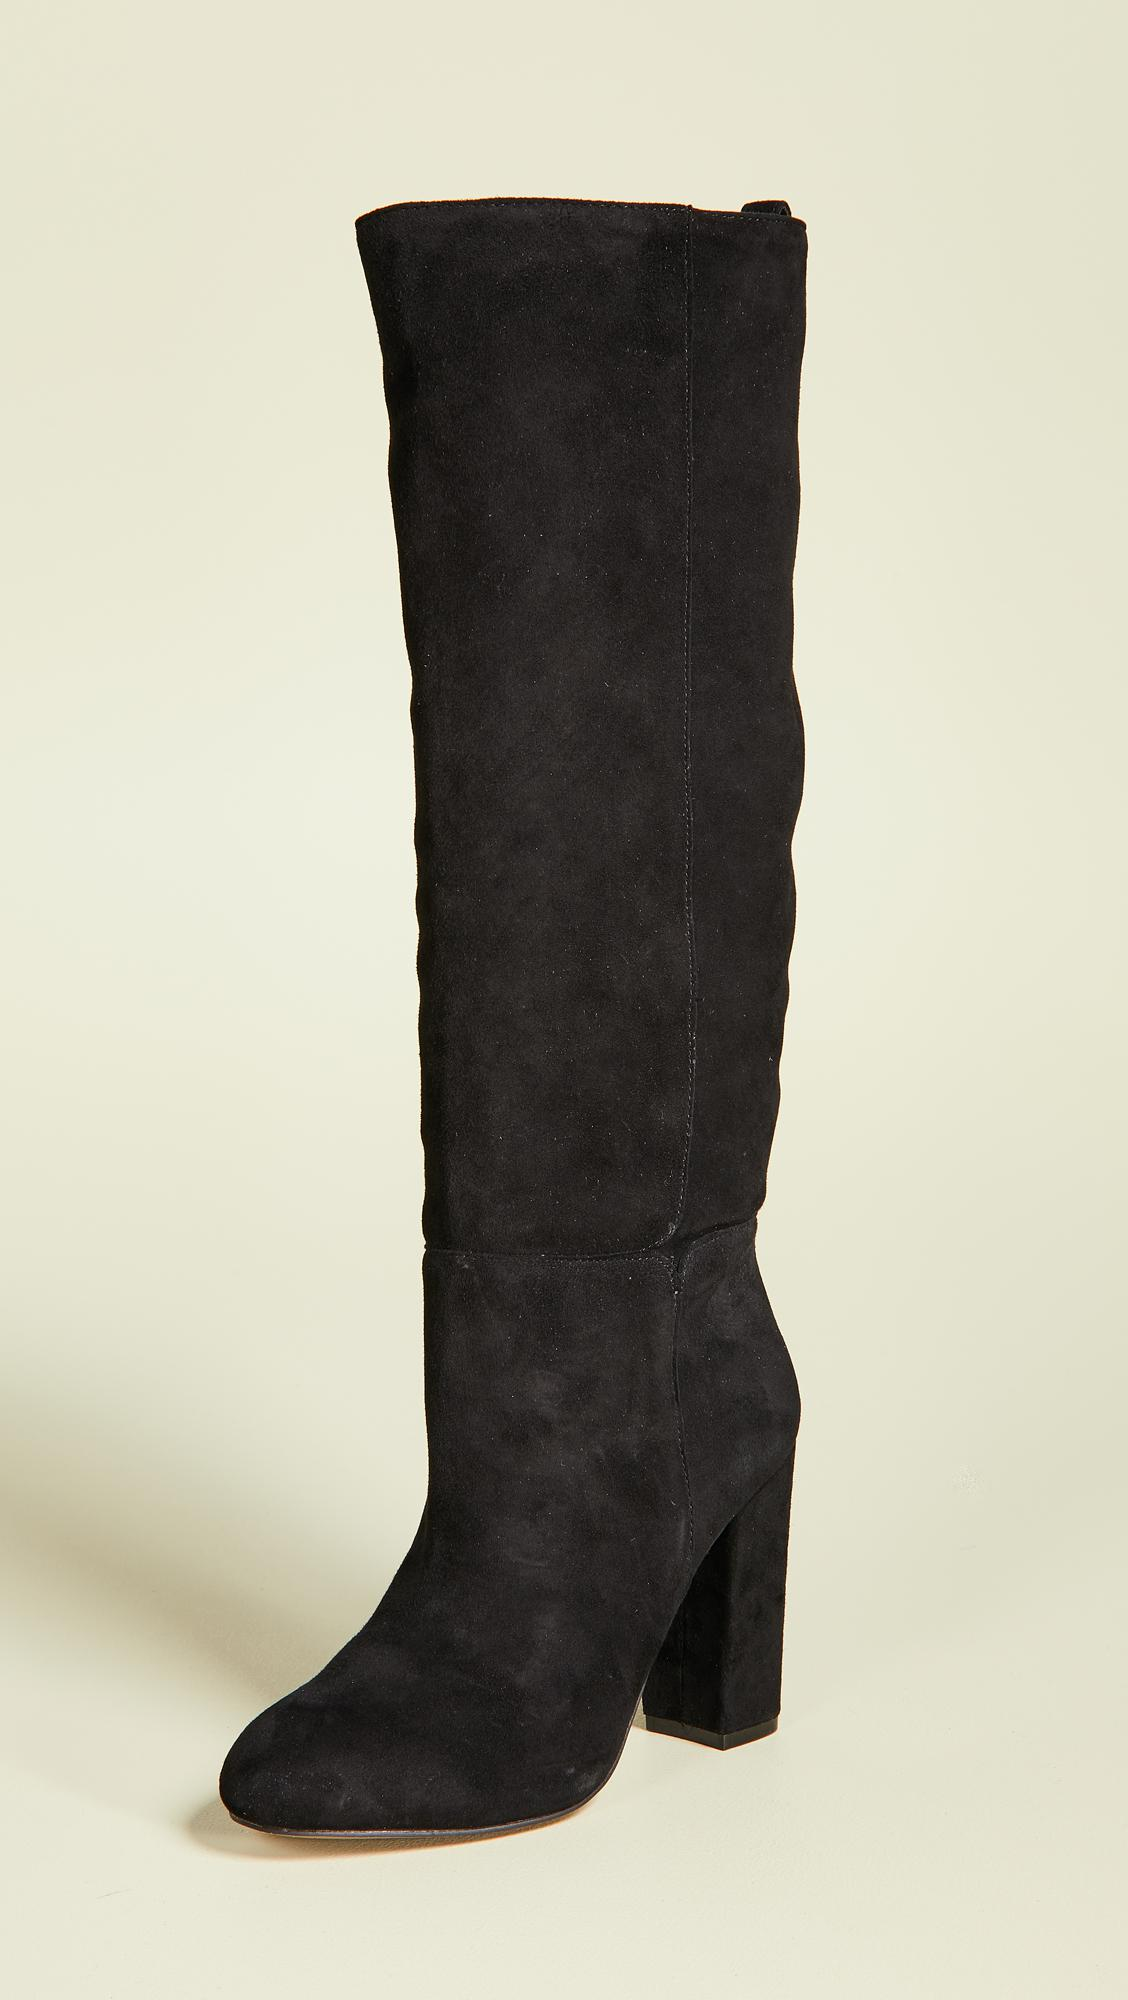 ed5c53ce0be Lyst - Steven by Steve Madden Tila To The Knee Boots in Black